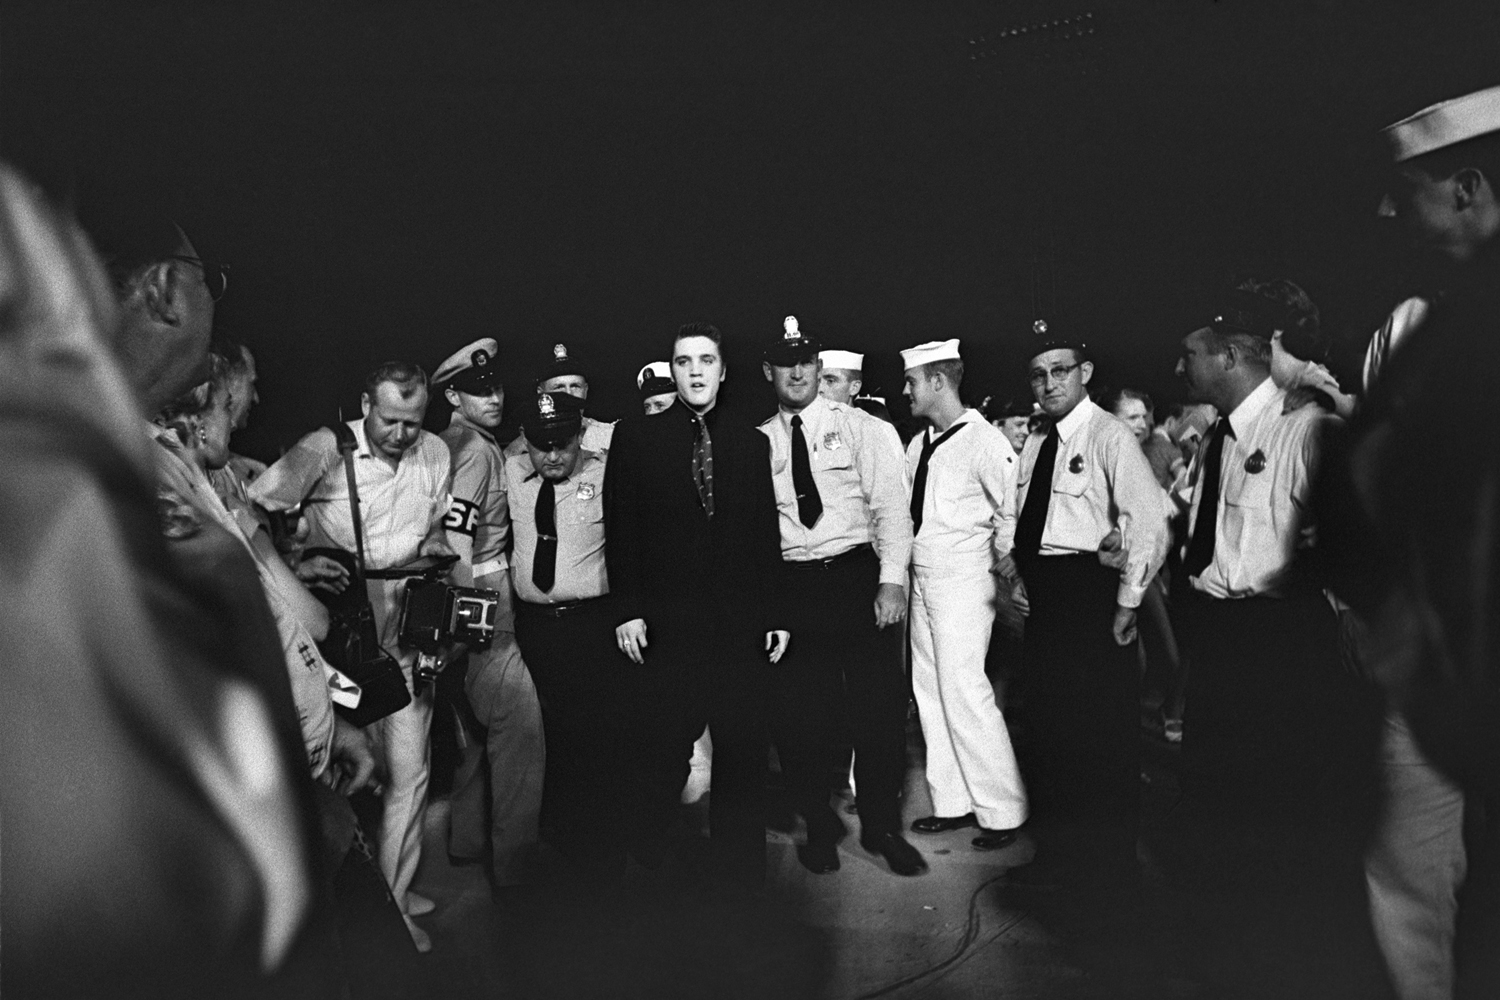 July 4, 1956. Russwood Park, Memphis. Elvis is entering the stadium escorted by the local police and fire department, but also by the Shore Police of the Navy. This was Elvis' first charitable benefit show, with proceeds going to The Cynthia Milk Fund and the Variety Club's Home for Convalescent Children.